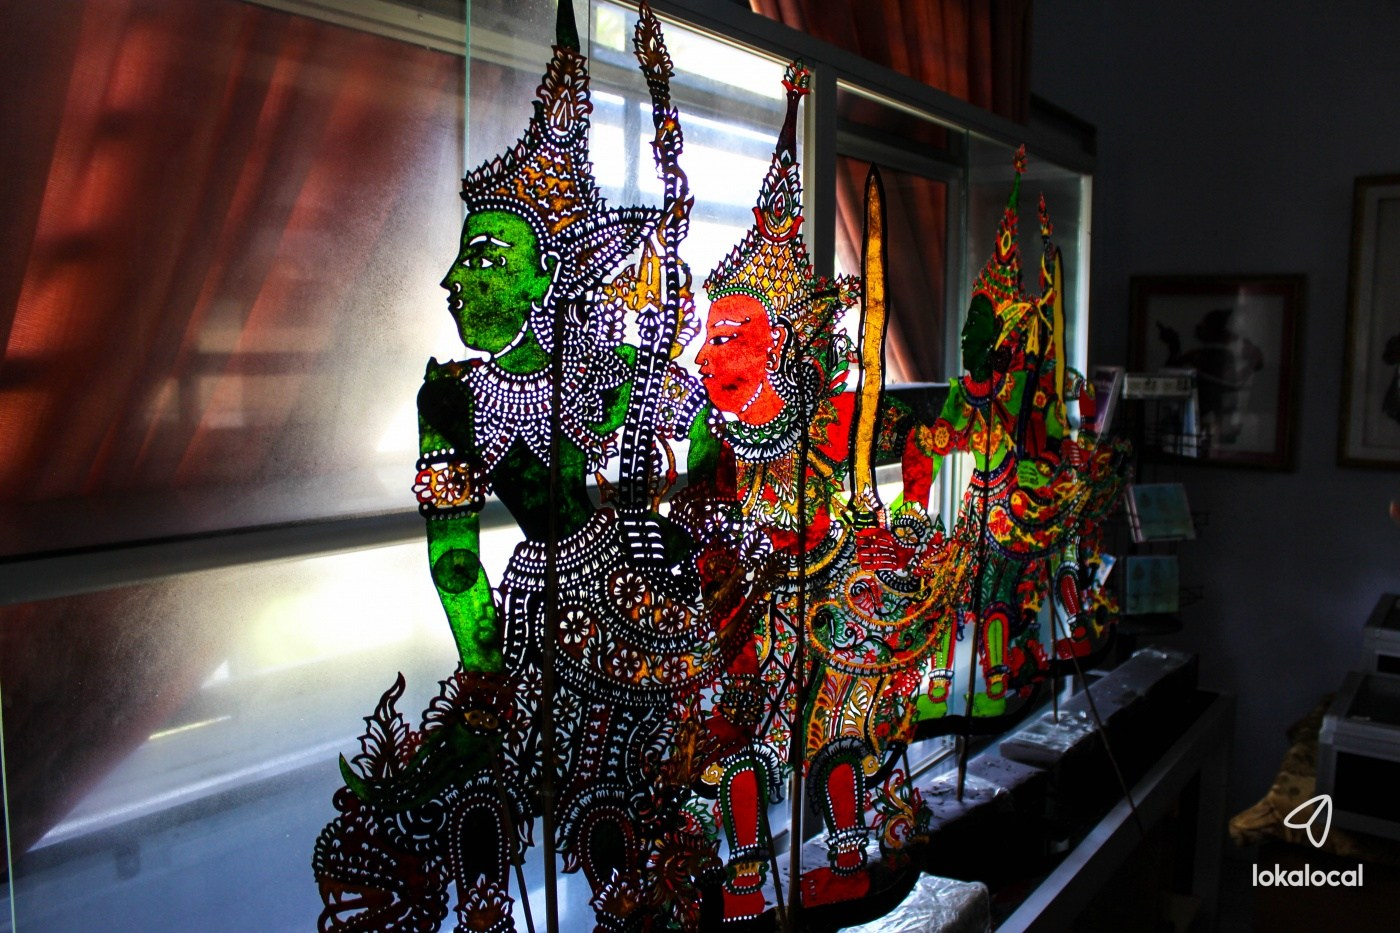 Have you personally seen a wayang kulit performance?